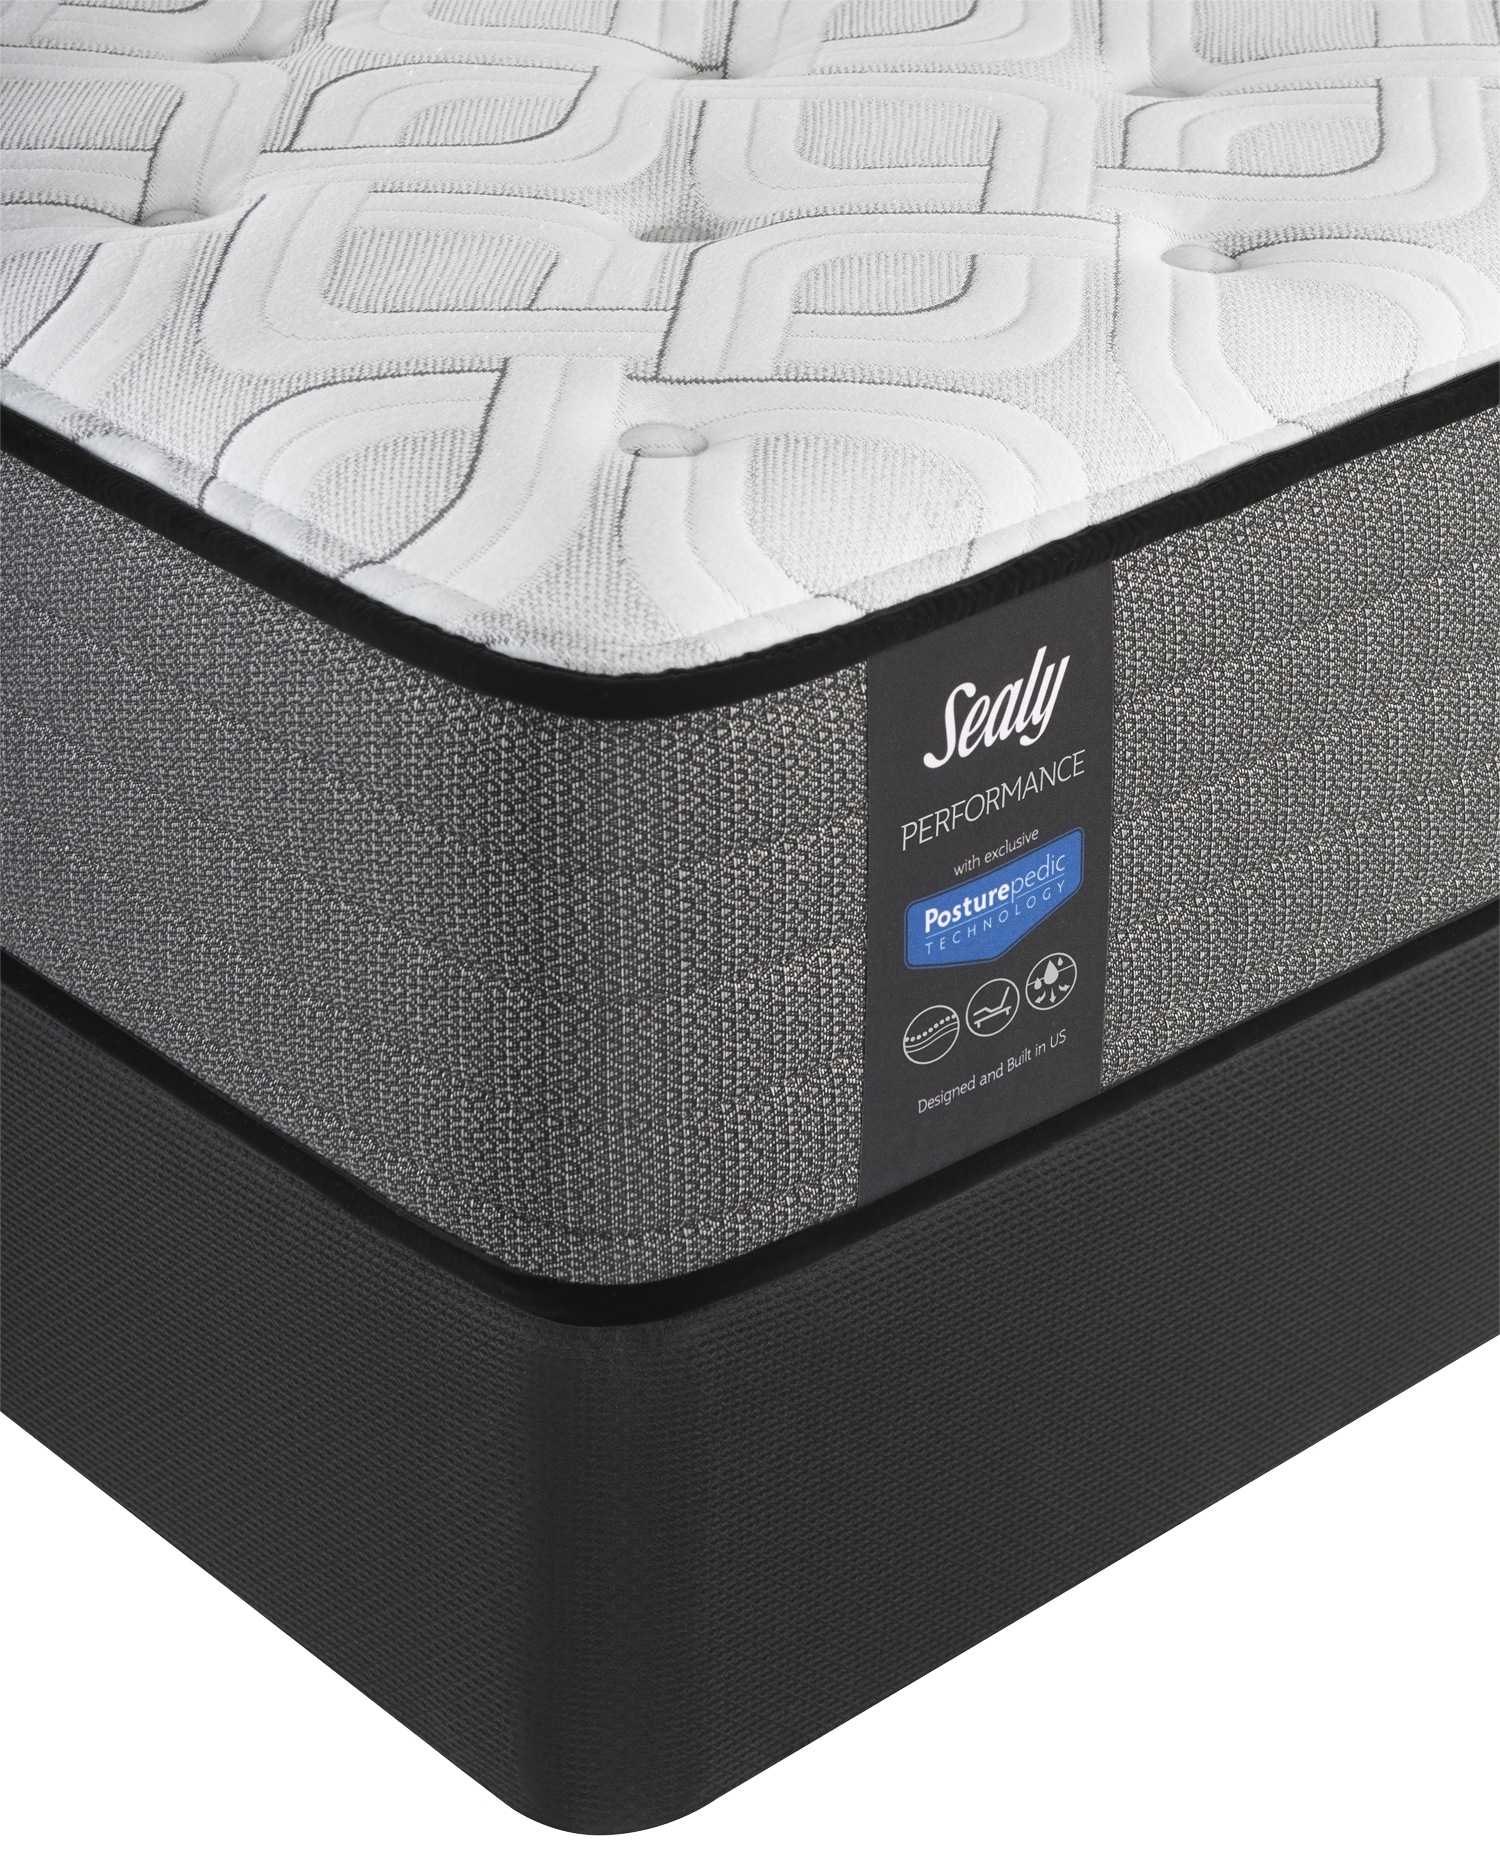 Sealy Vs Beautyrest Sealy India Ultra Firm Adjustable Full Mattress